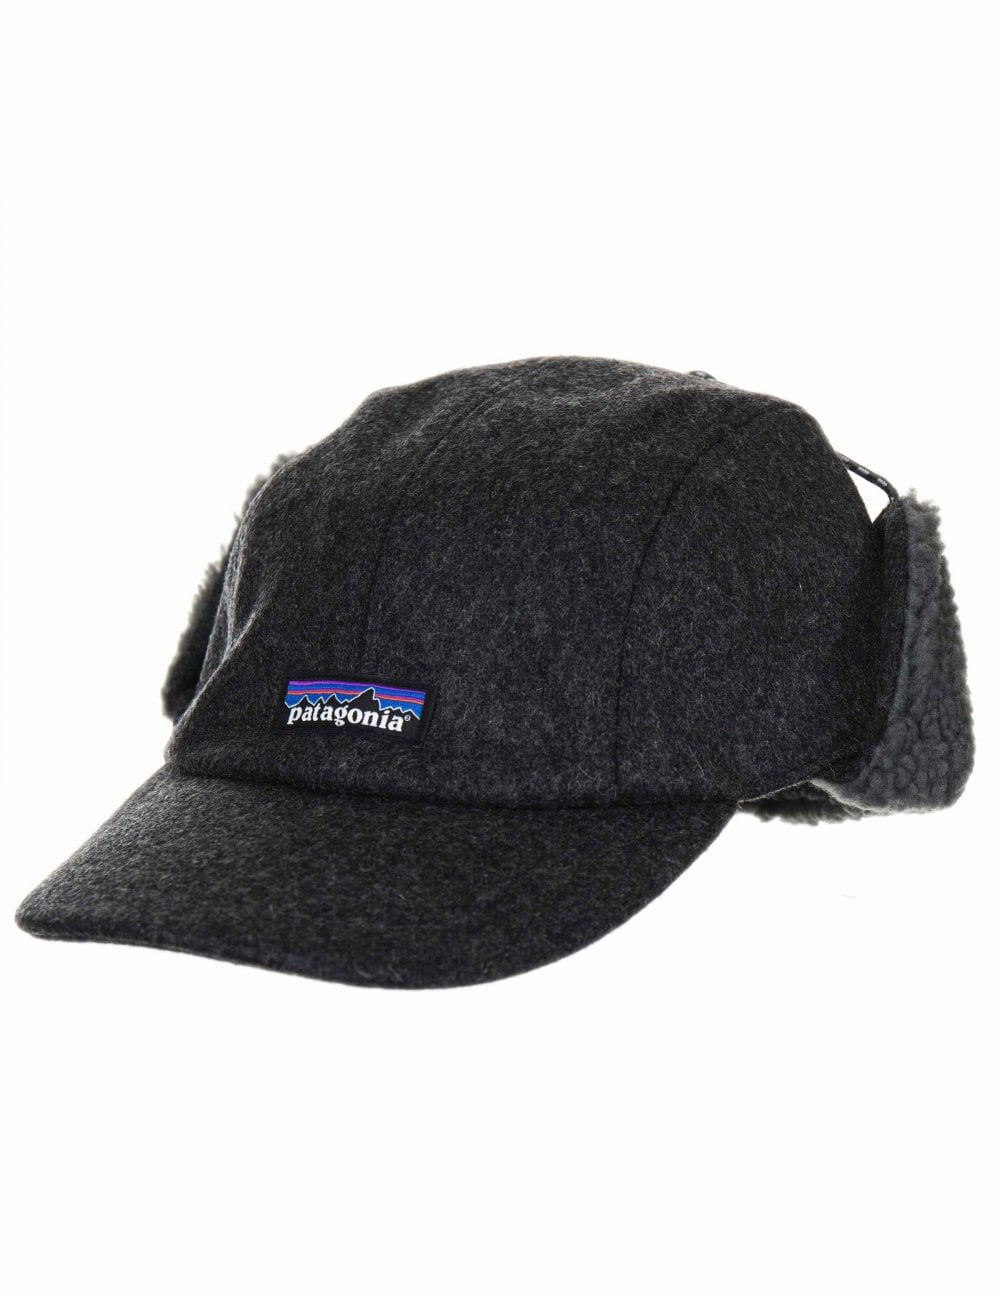 1f0ba9fa3e3 Patagonia Recycled Wool Ear Flap Cap - Forge Grey - Accessories from ...